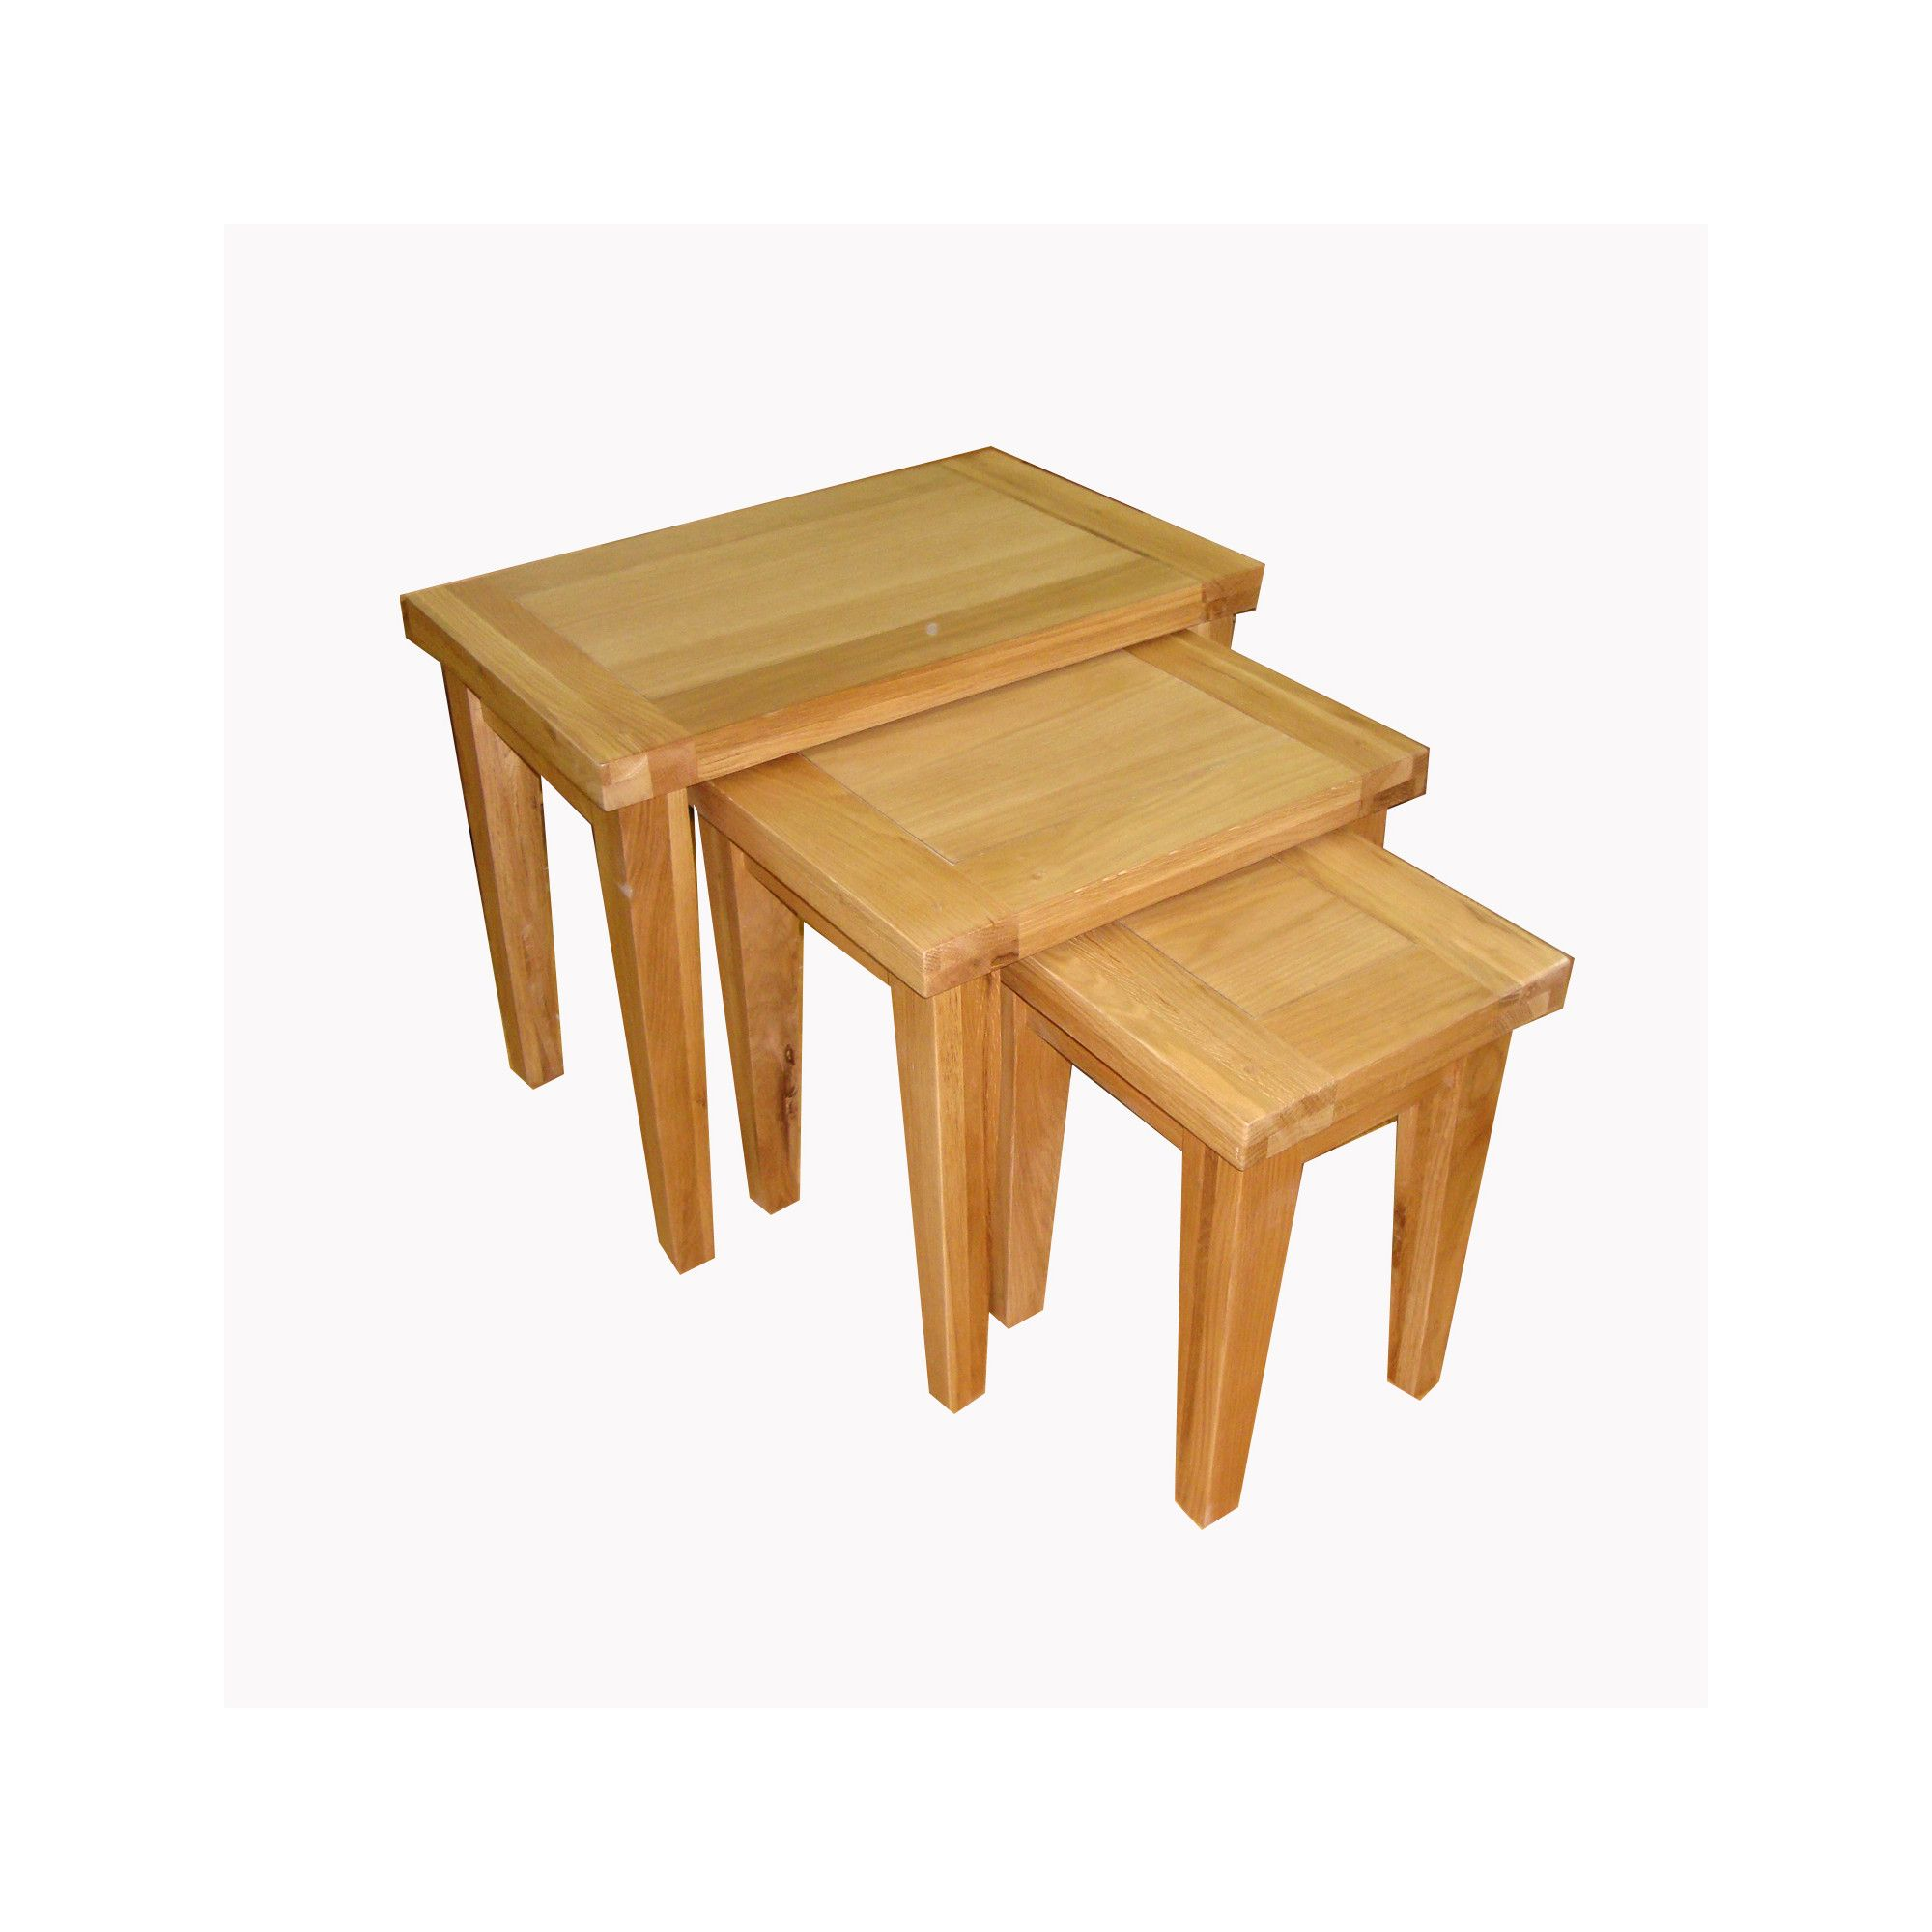 Solway Furniture Baltic Nest of Tables at Tesco Direct